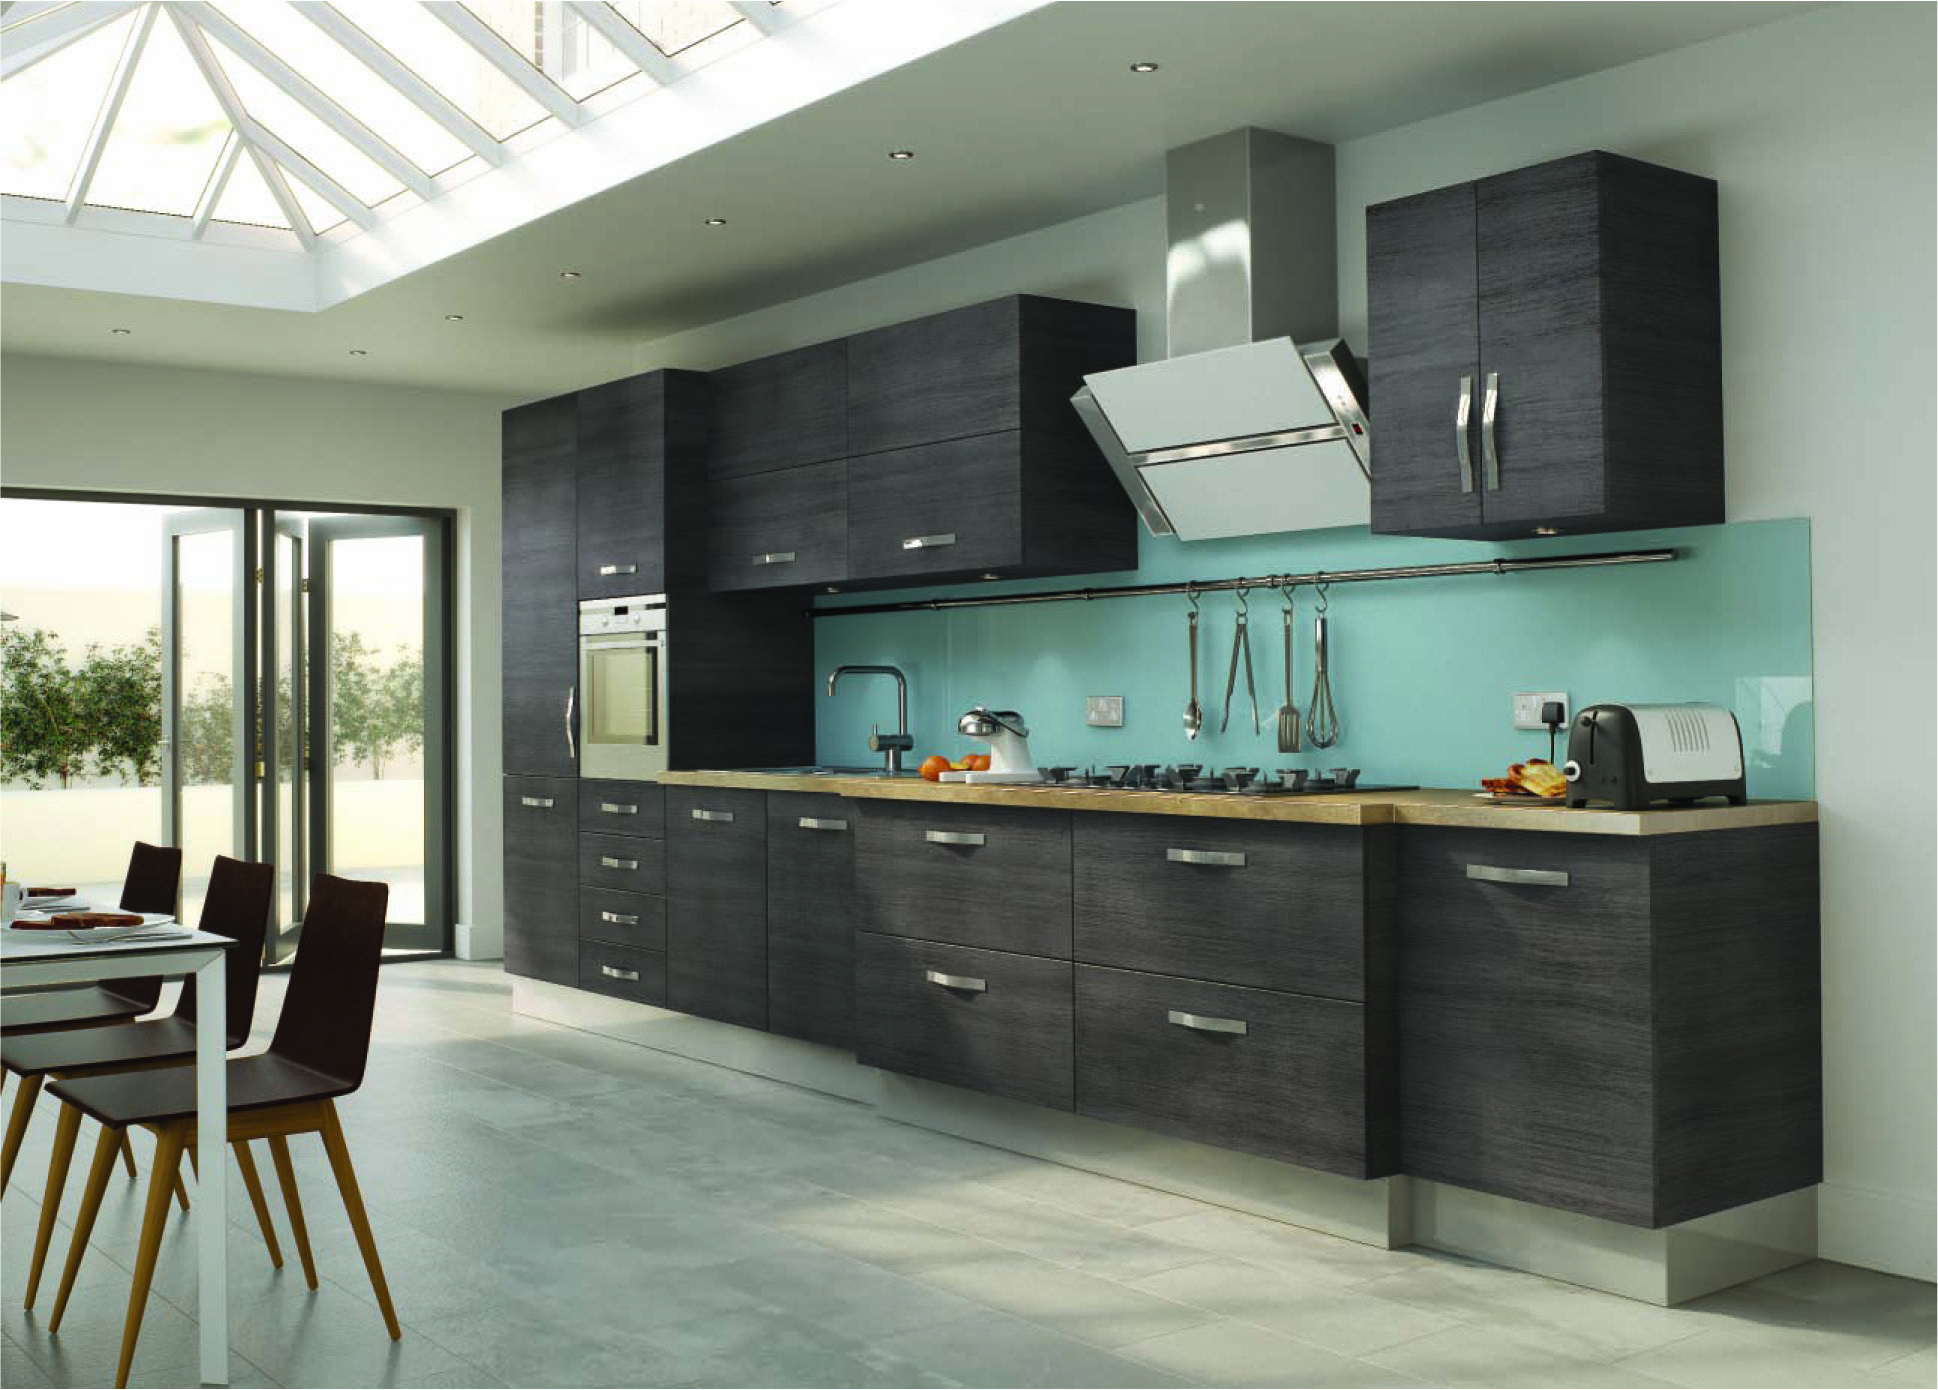 Contemporary Kitchens Designs Extraordinary Know The Latest Contemporary Kitchen Design Trends1Color Design Decoration